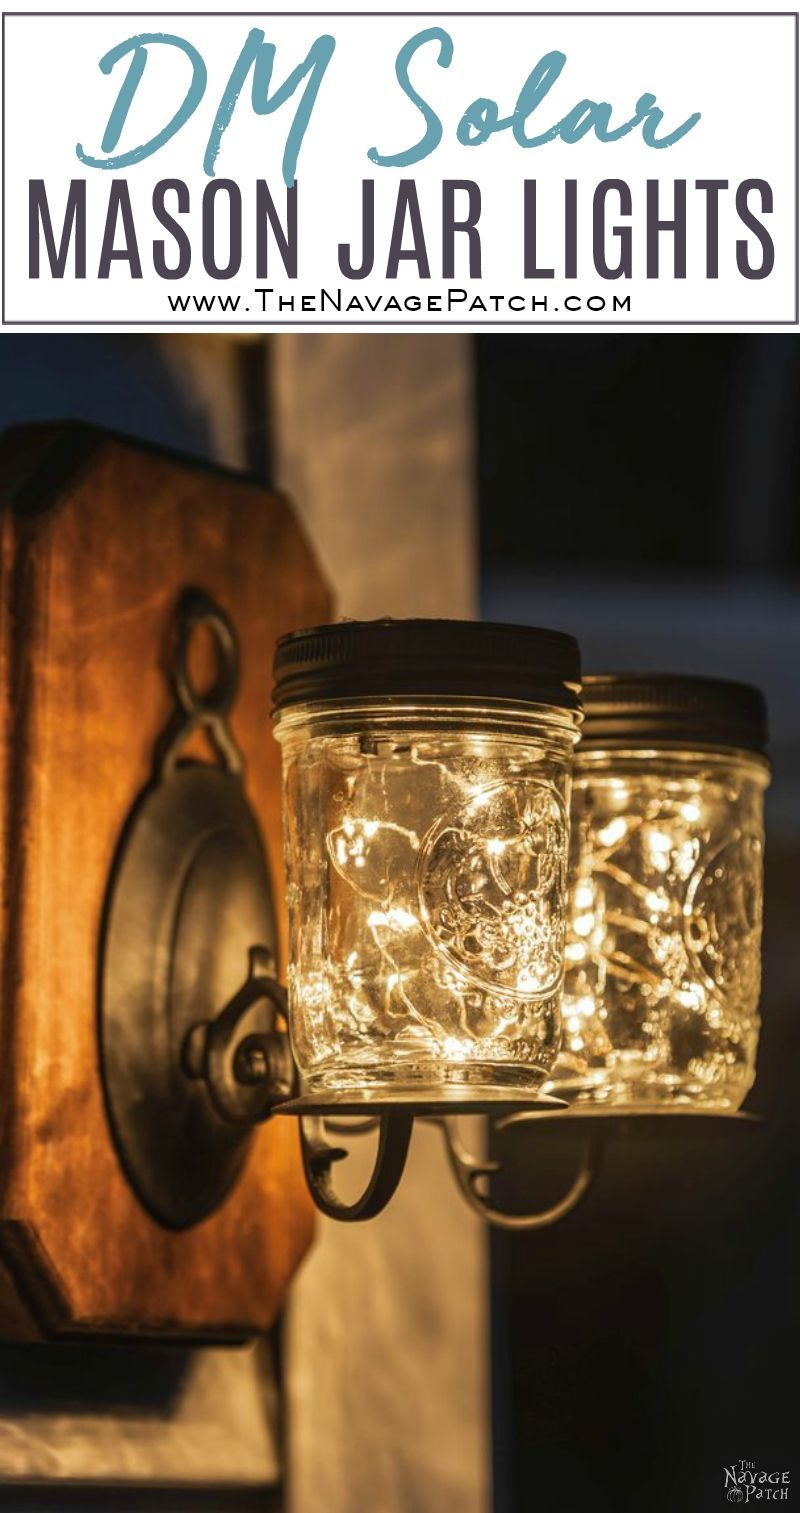 Solar Mason Jar Lights #masonjardiy